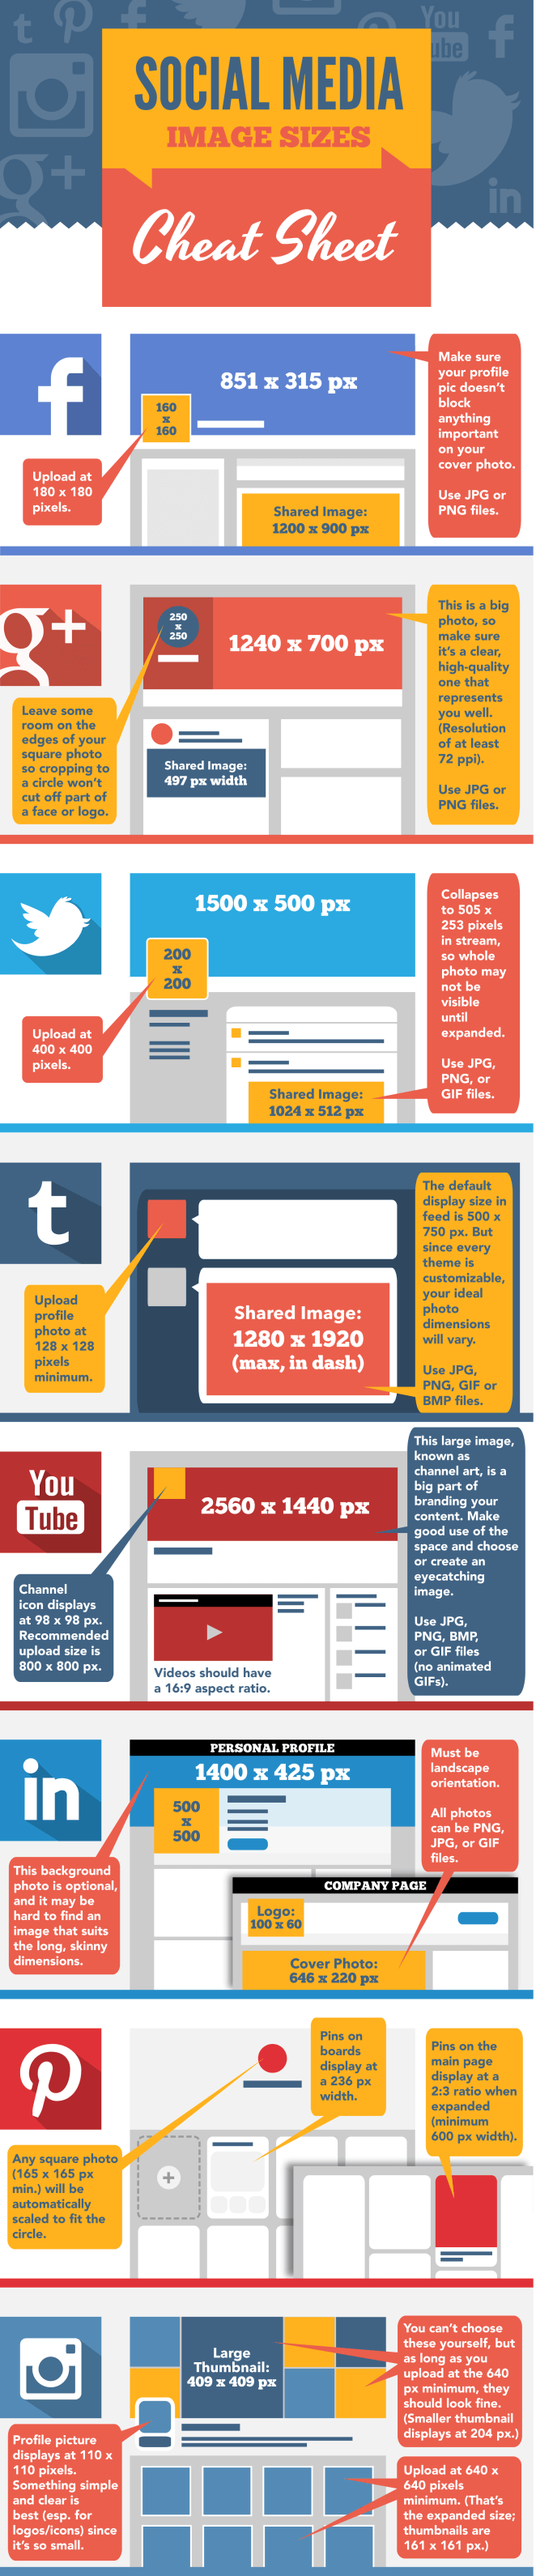 Social media image sizes cheat sheet 2018 Ultimate 2018 Social Media Image Size Cheat Sheet